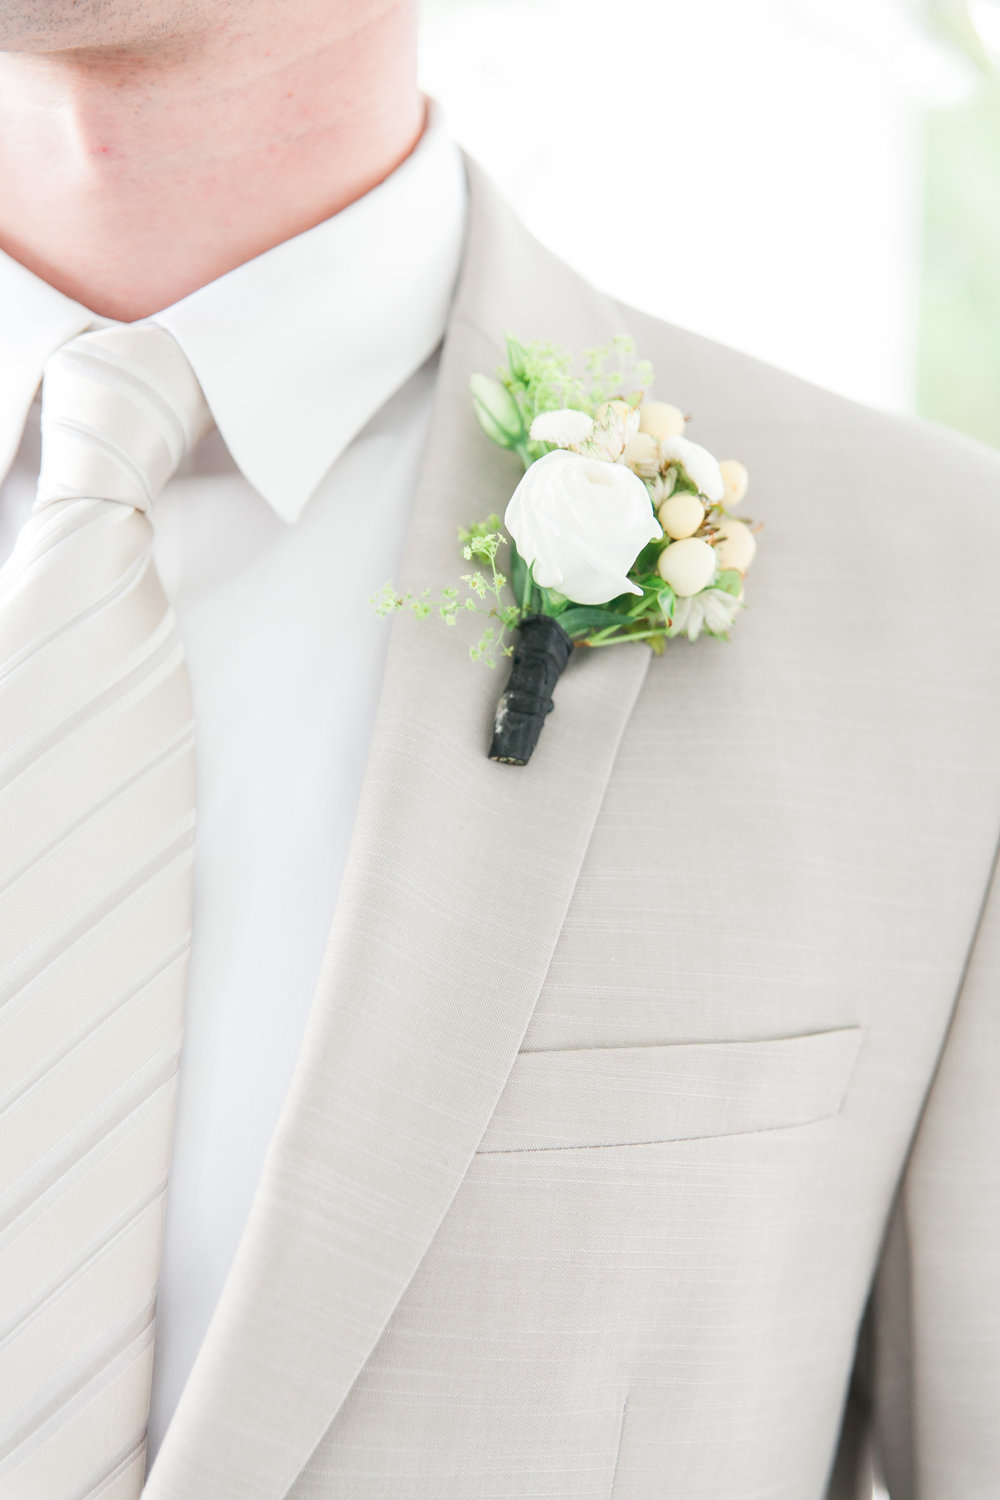 Groom's neutral boutonniere detail